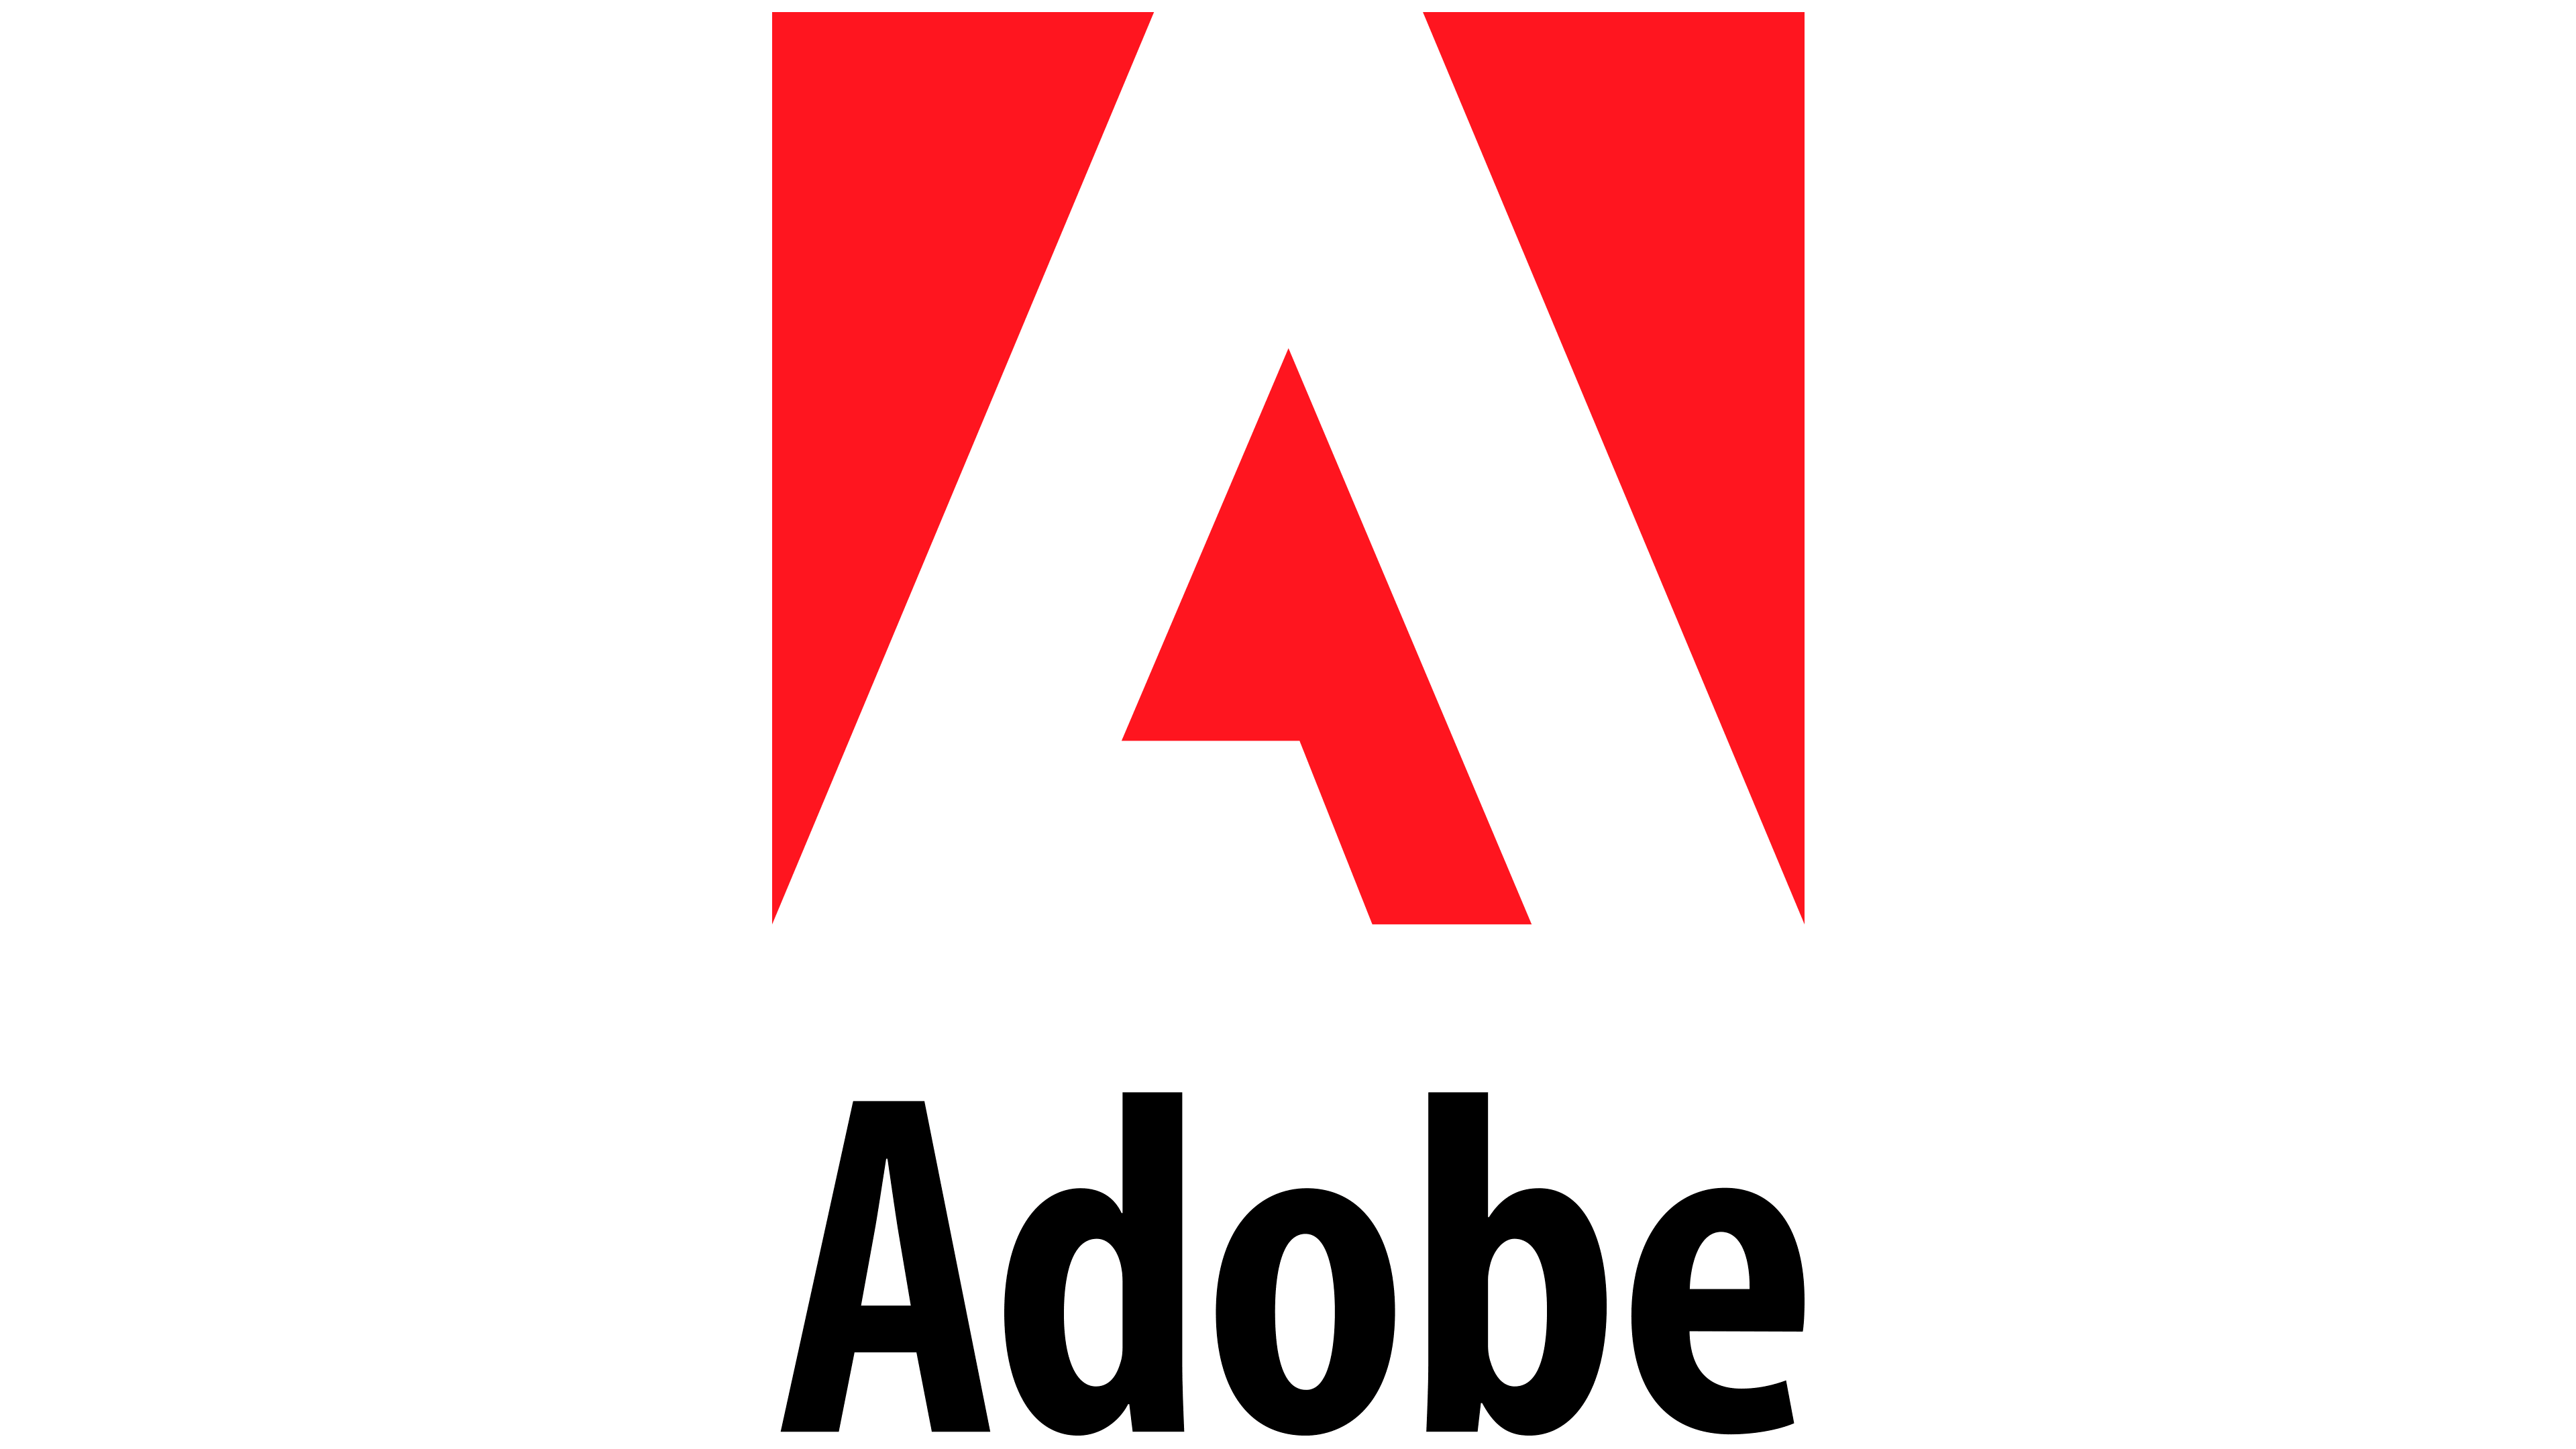 https://inspiredecm.com/wp-content/uploads/2021/02/Adobe_logo_1993.png